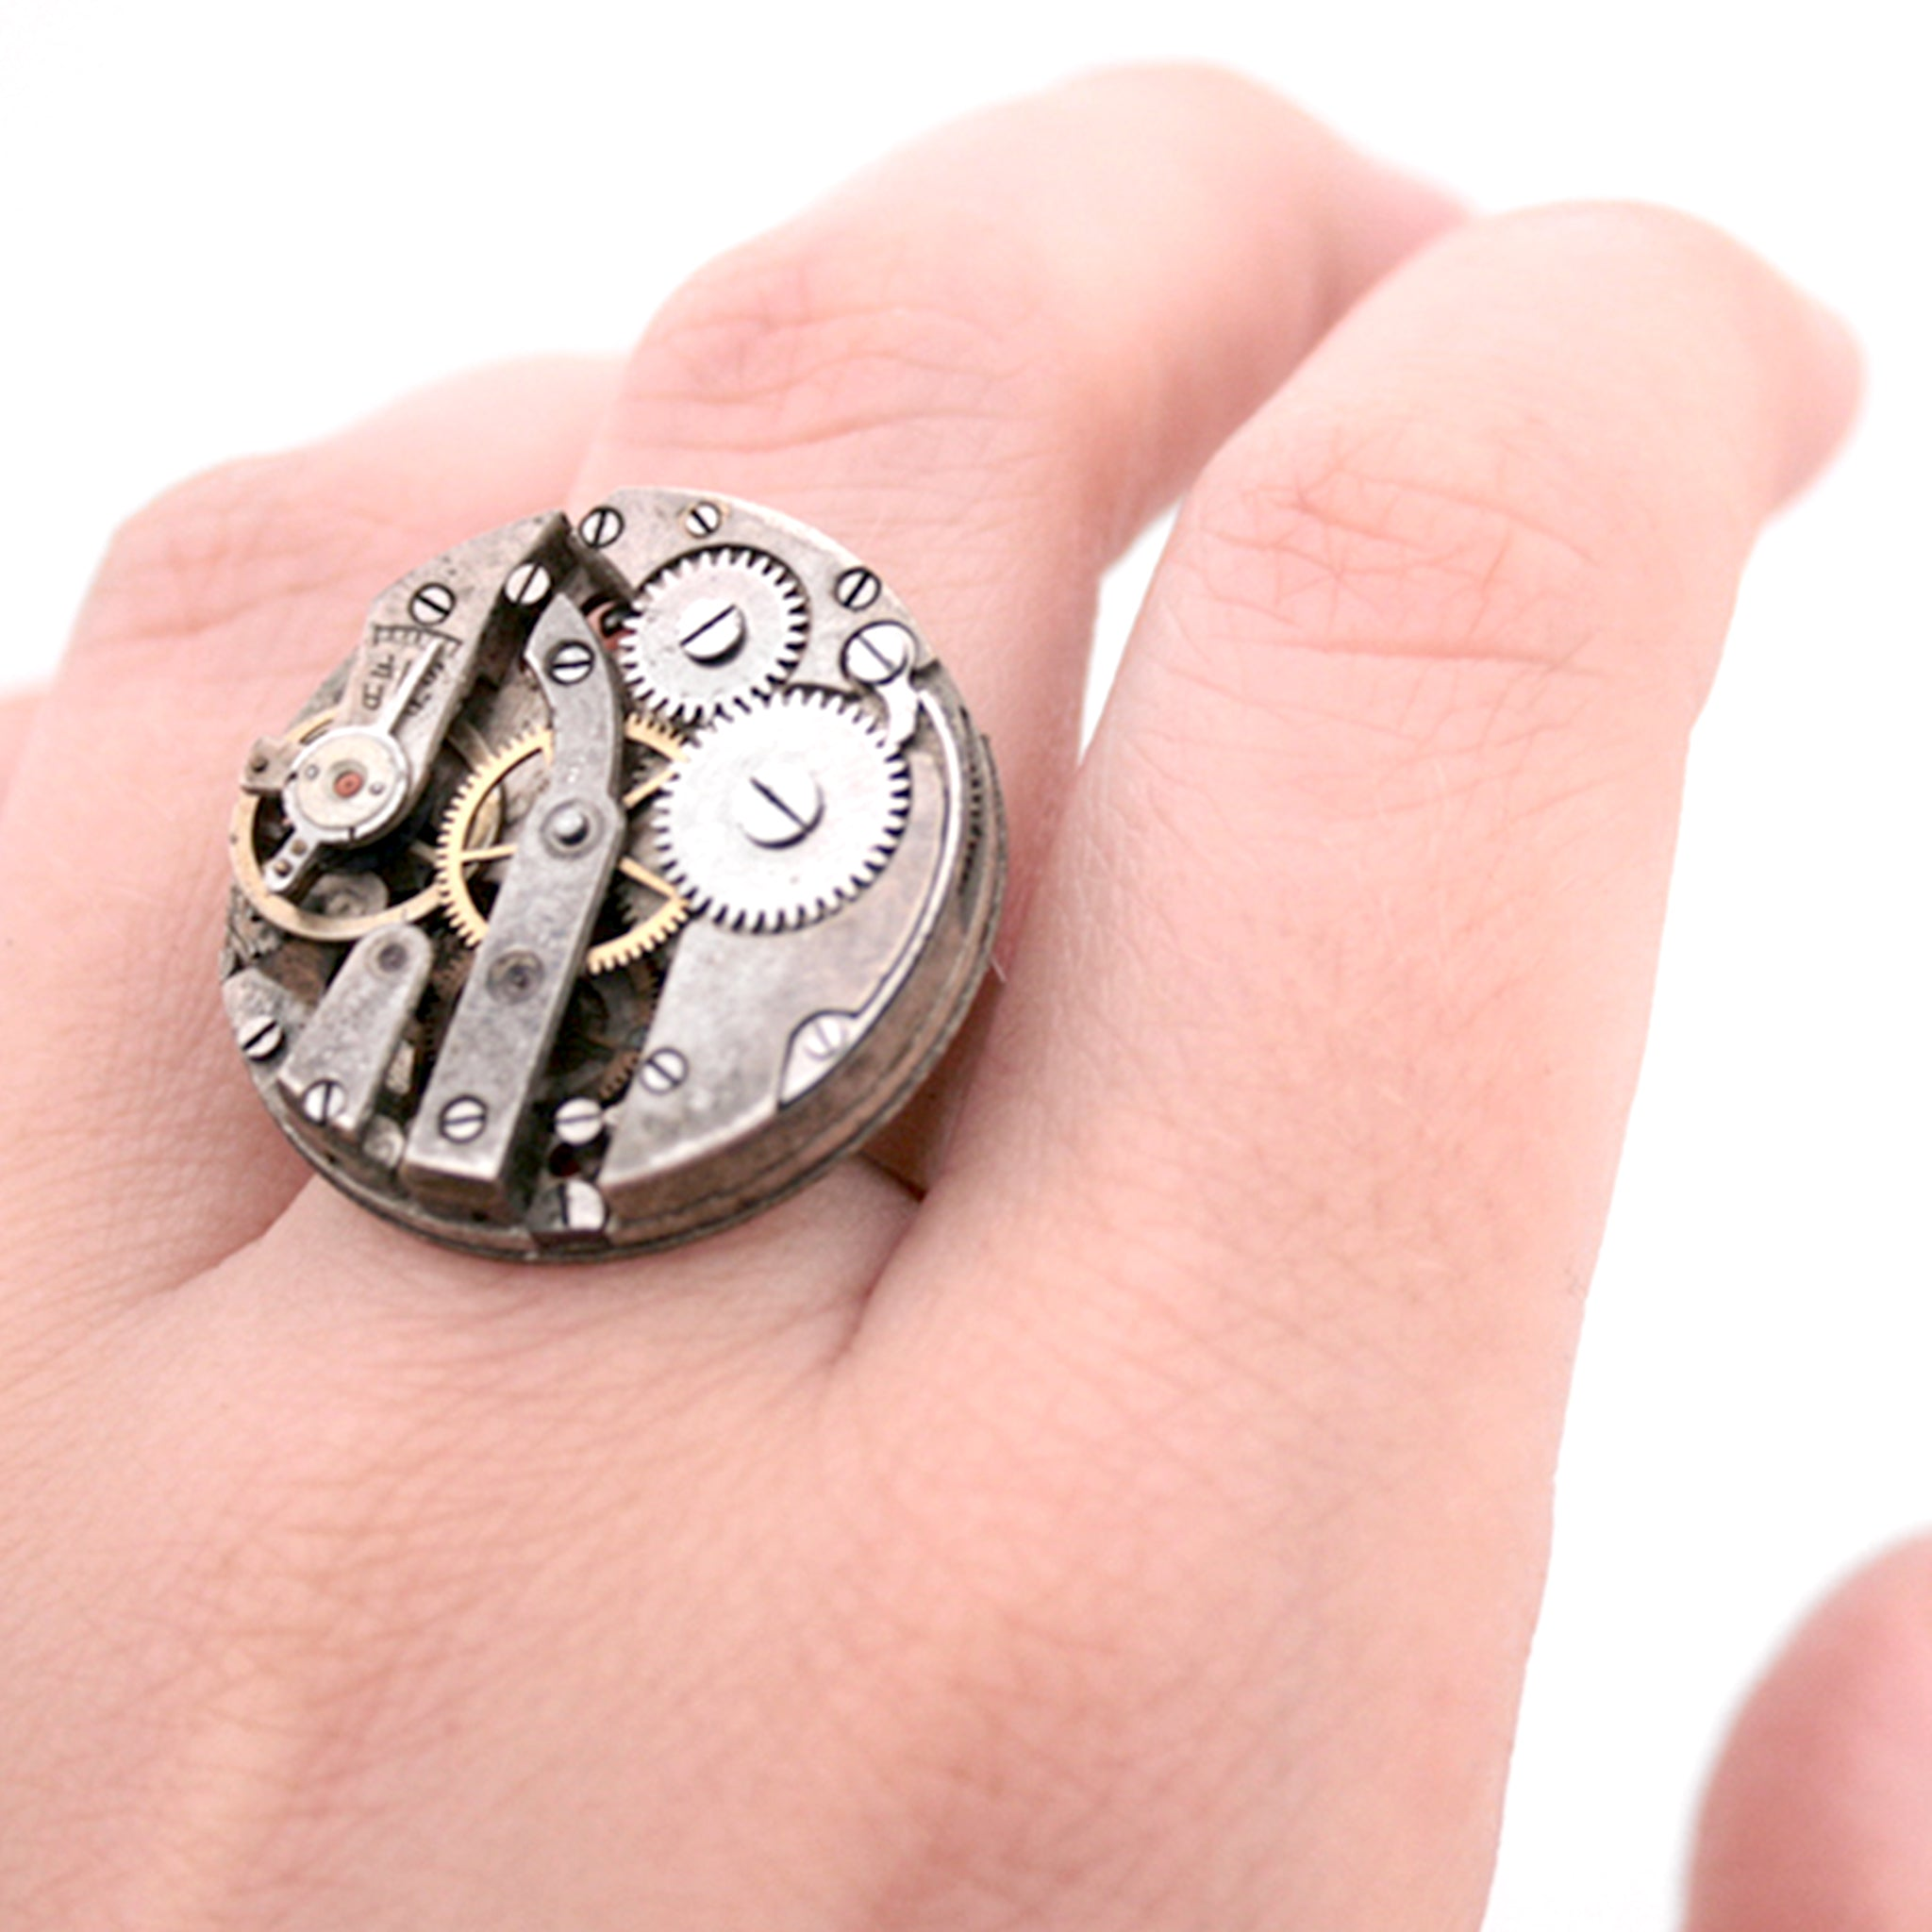 Gothic Ring in Old Silver made of watch mechanism